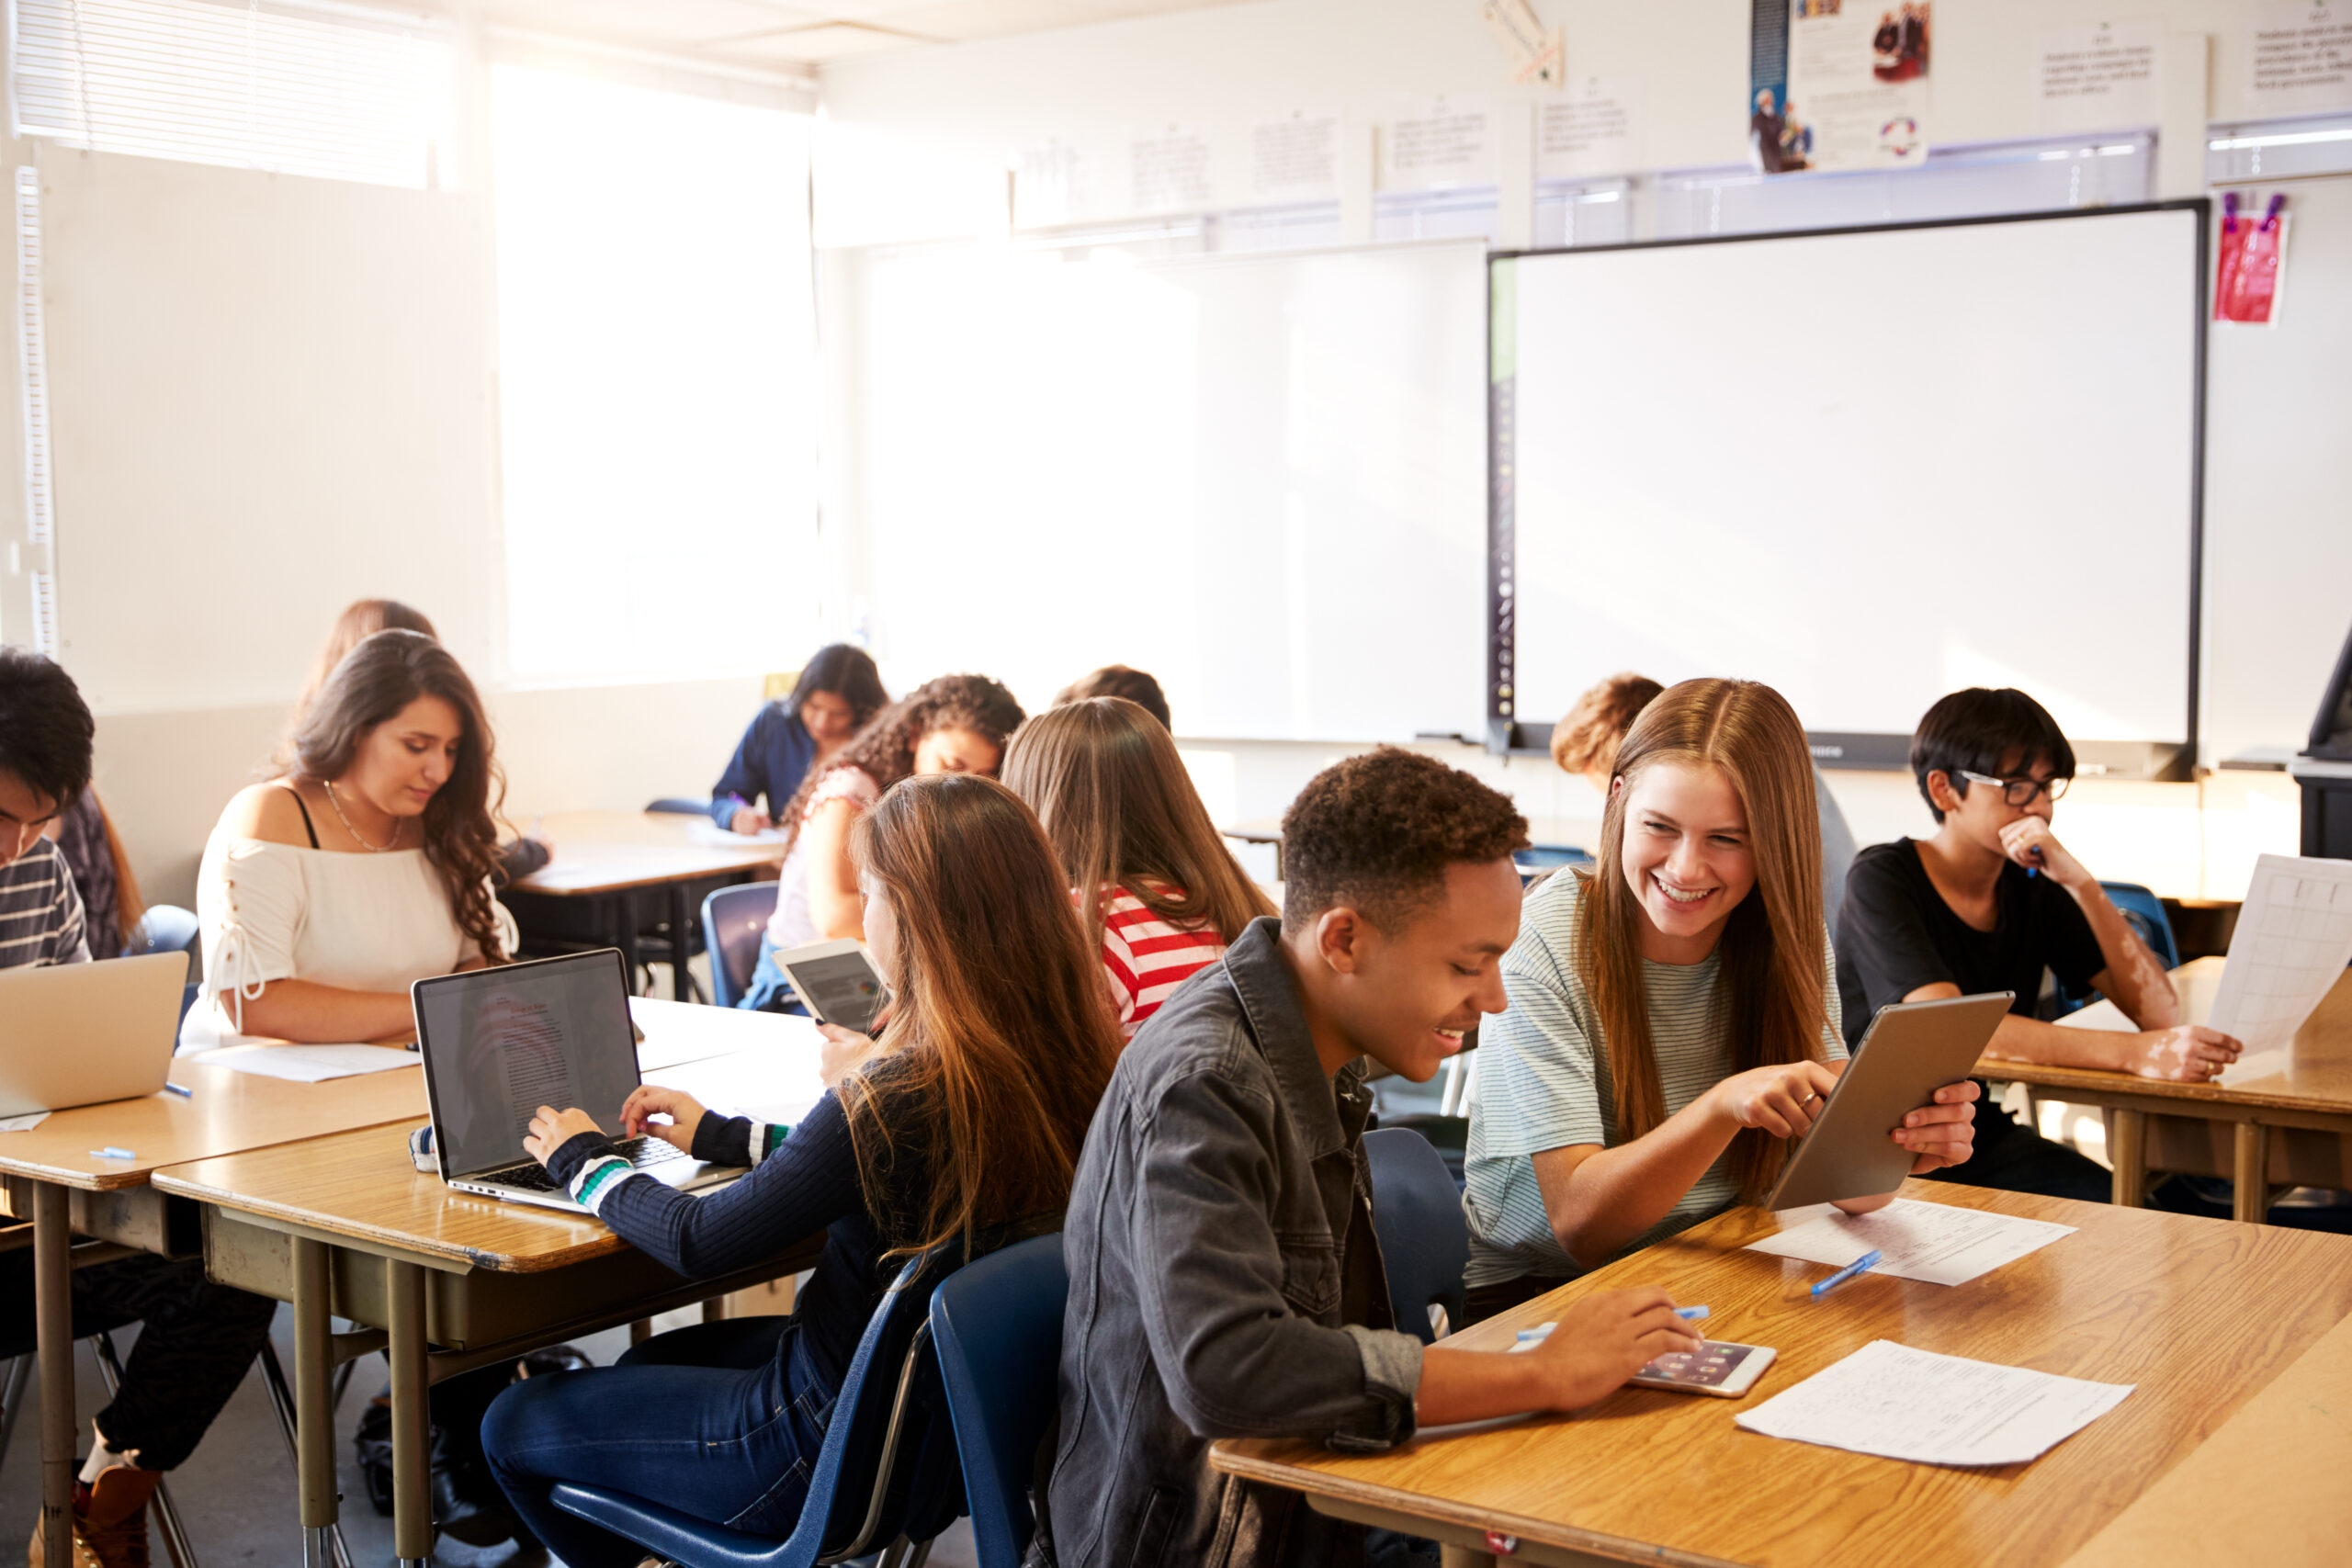 Wide,Angle,View,Of,High,School,Students,Sitting,At,Desks